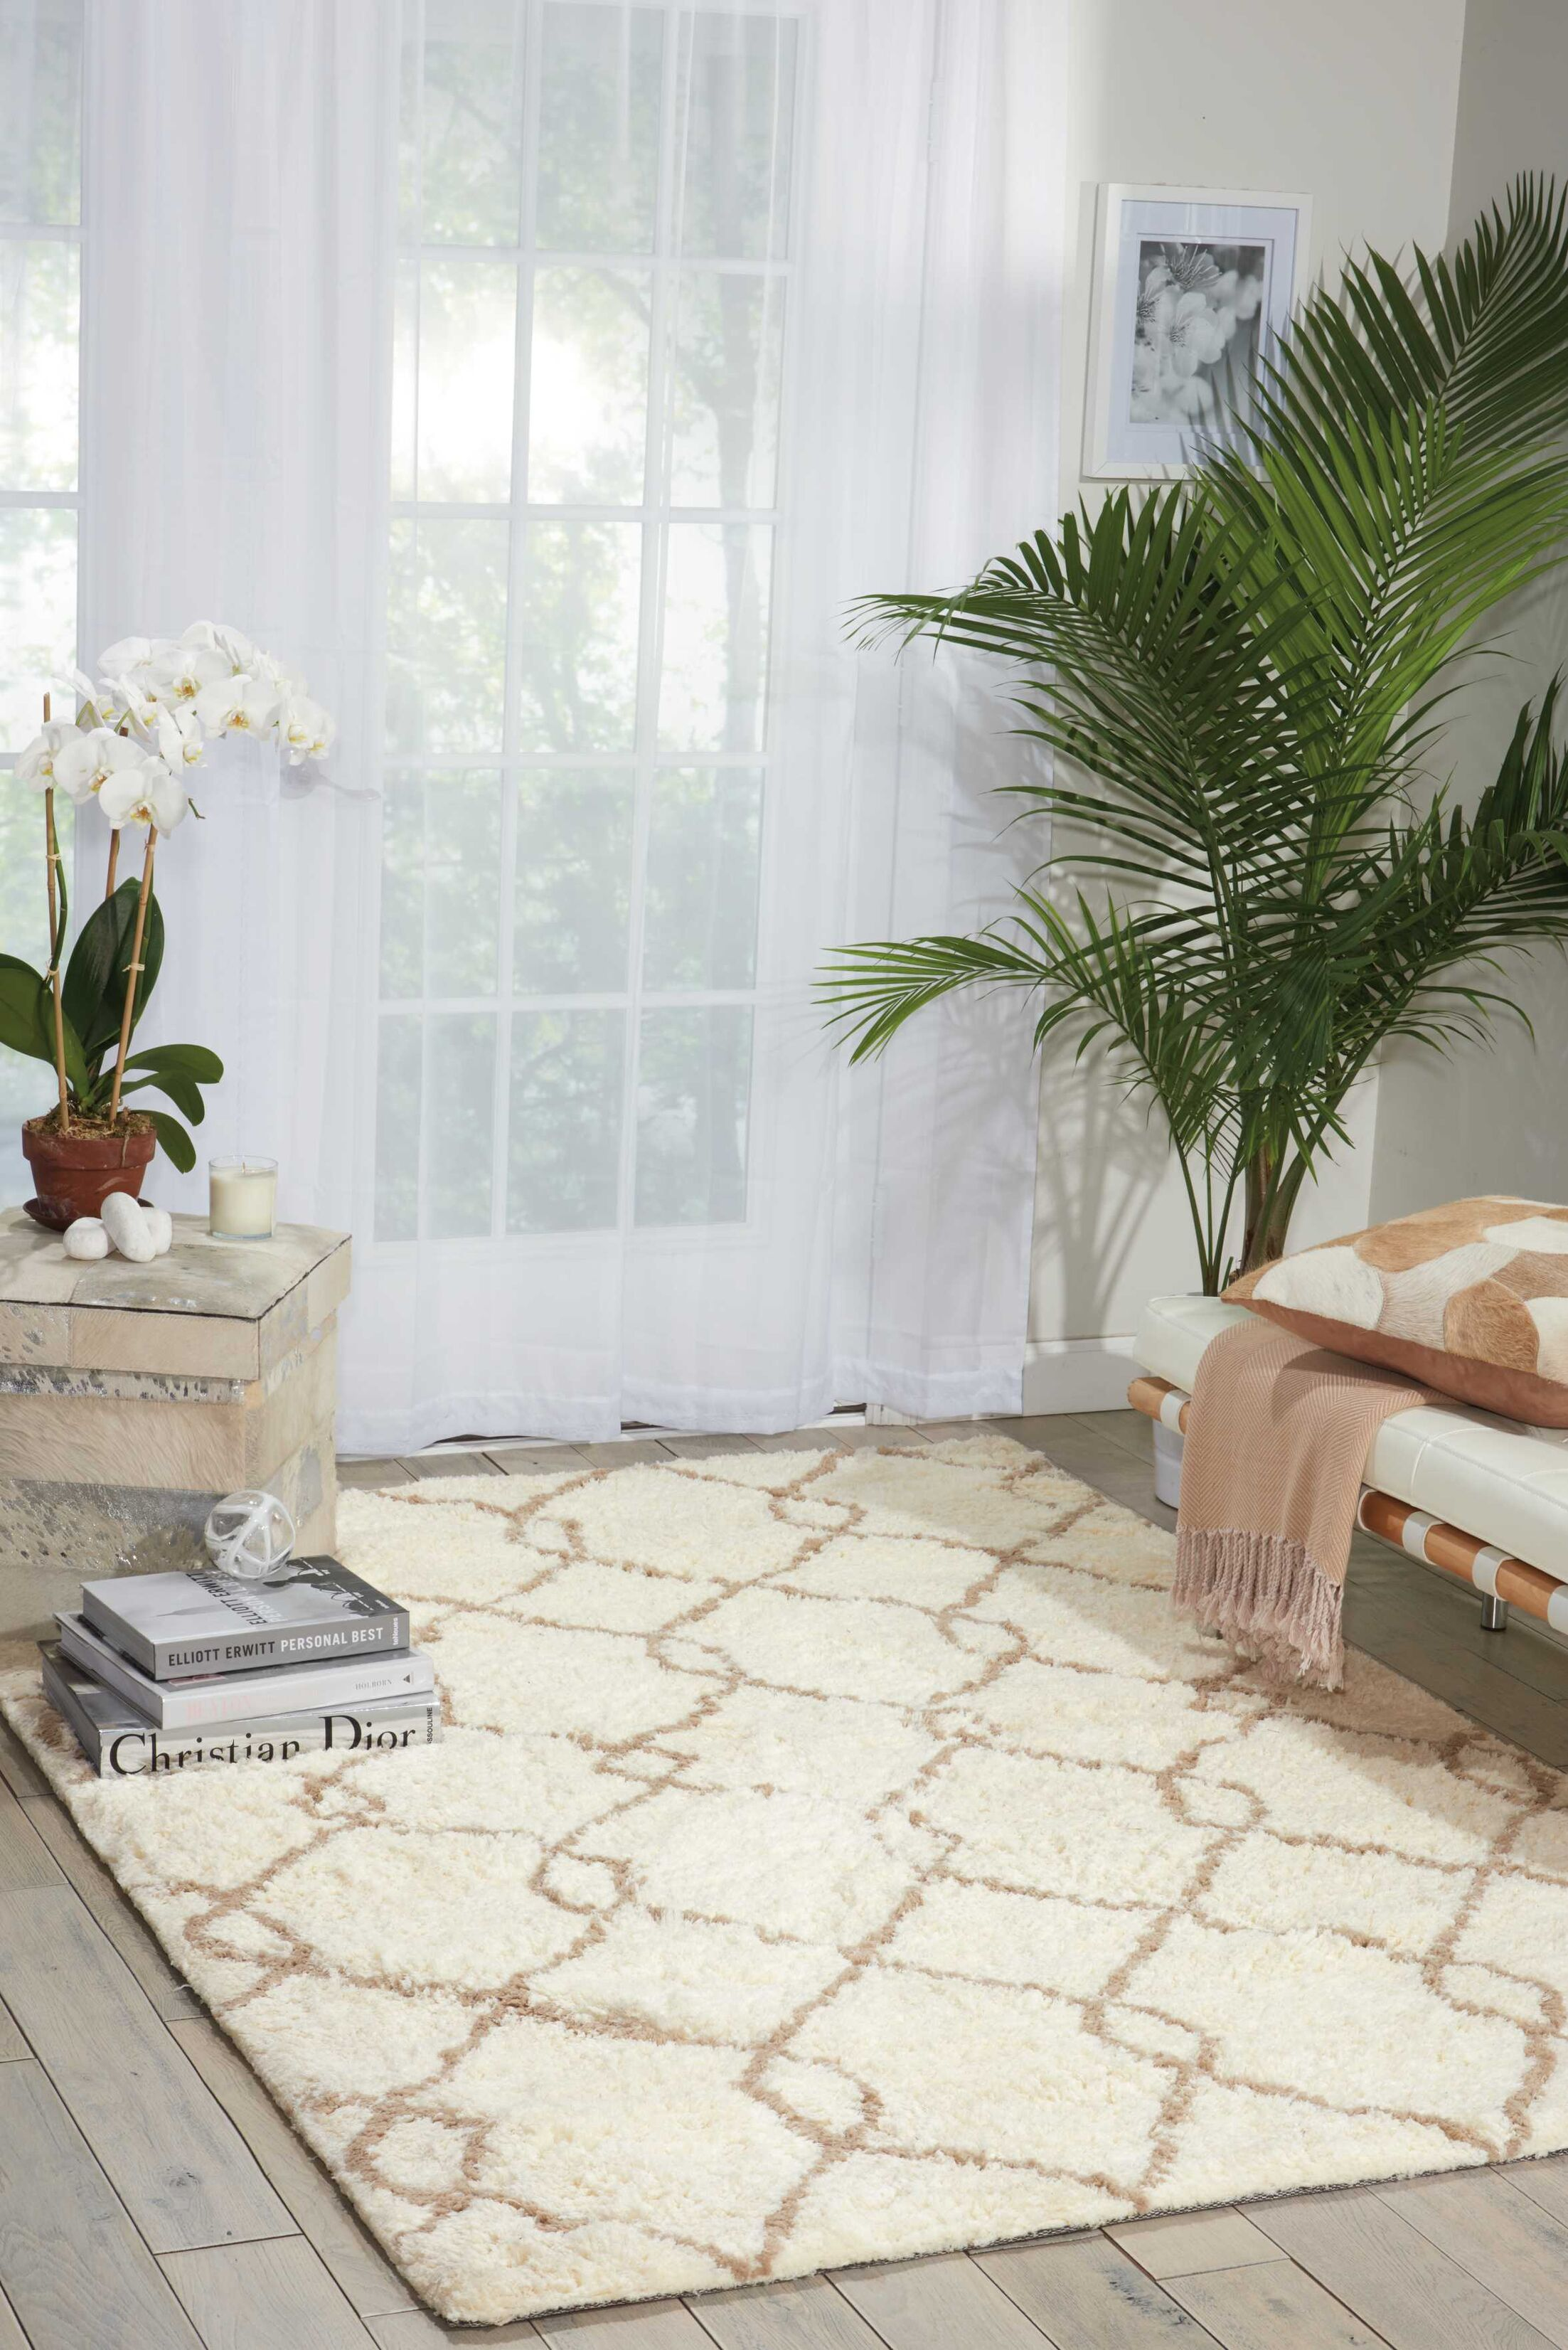 North Moore Hand-Tufted Ivory/Tan Area Rug Rug Size: Rectangle 5' x 7'